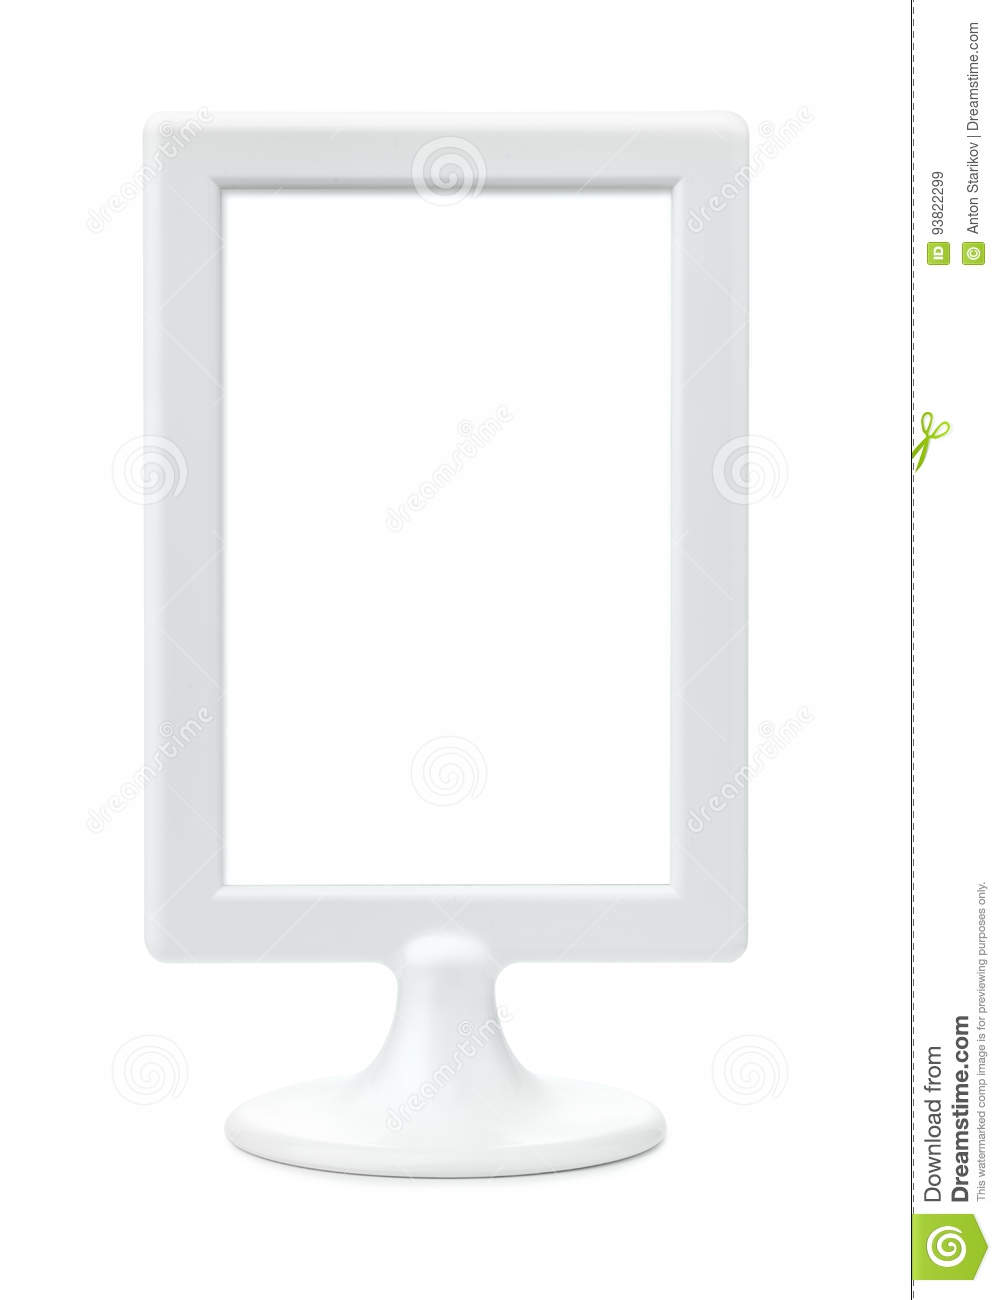 White Plastic Empty Picture Frame Stand Stock Image - Image of clean ...